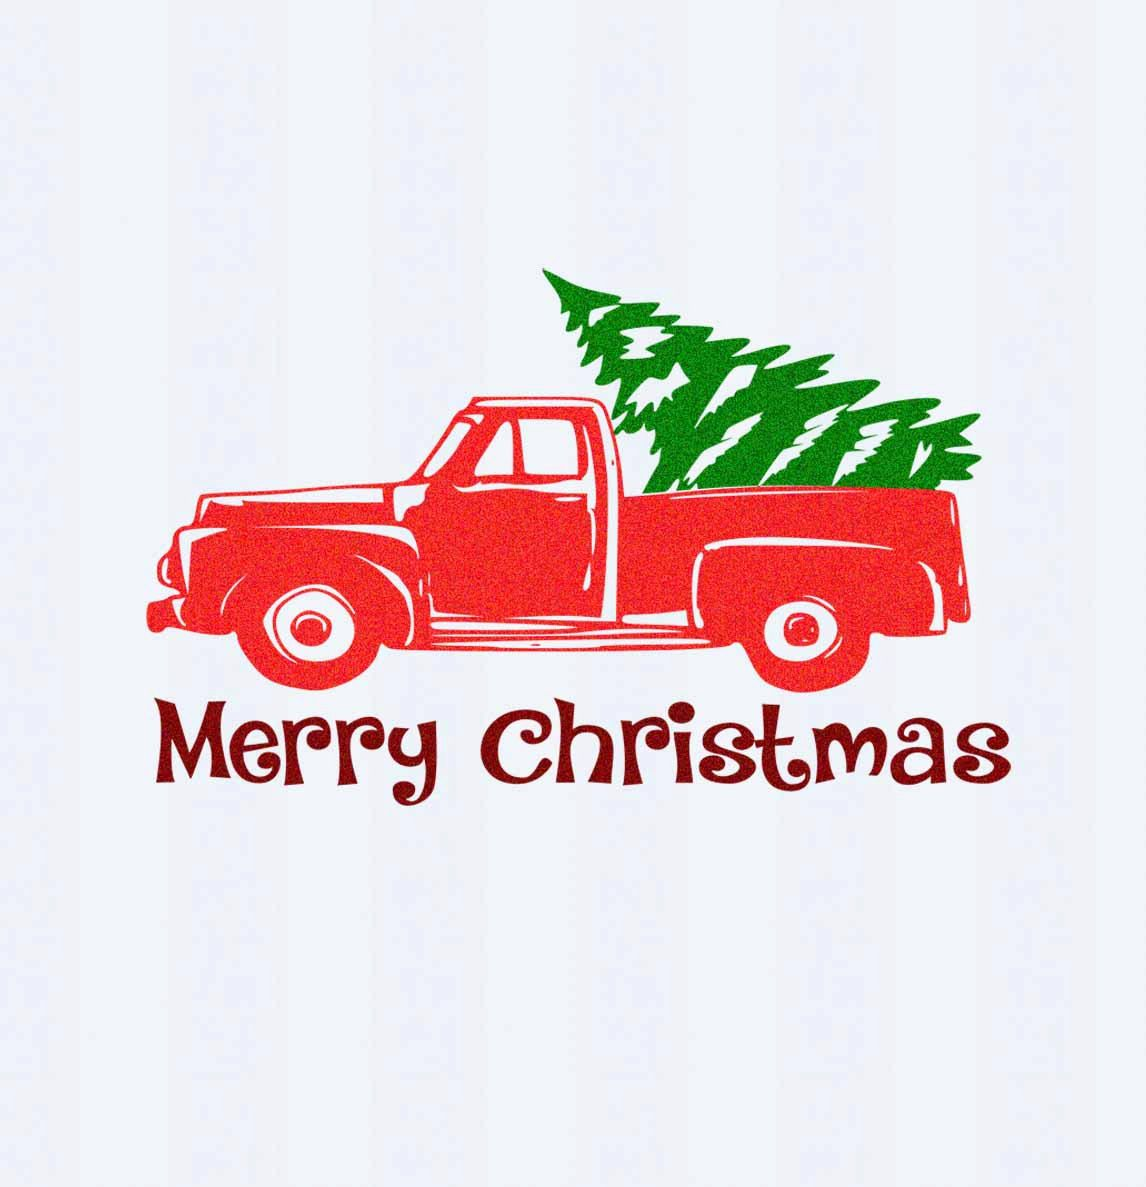 Christmas truck svg cut file decal vector tree winter holidays vintage svg classic truck svg dxf eps png cut file silhouette